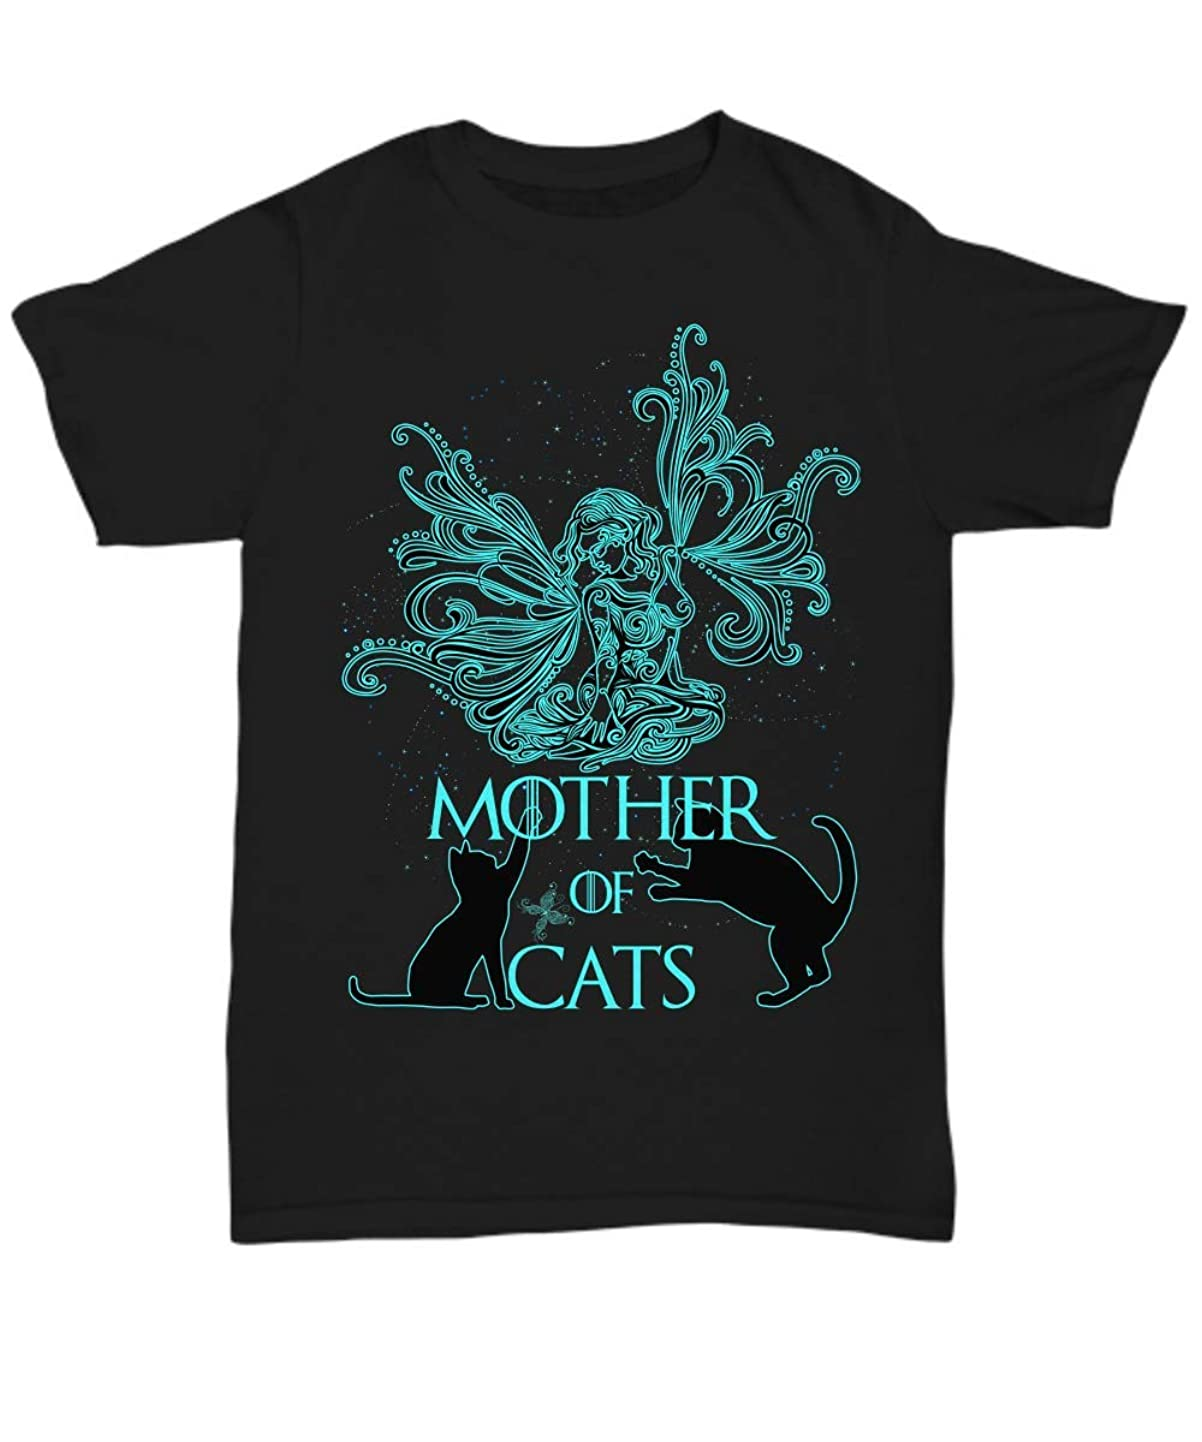 Mother of Cats - Tattoo 01 Women Tshirt - Cute Black Unisex Tee Gift - Great Gifts for Mother's Day zowlpvxawzo4